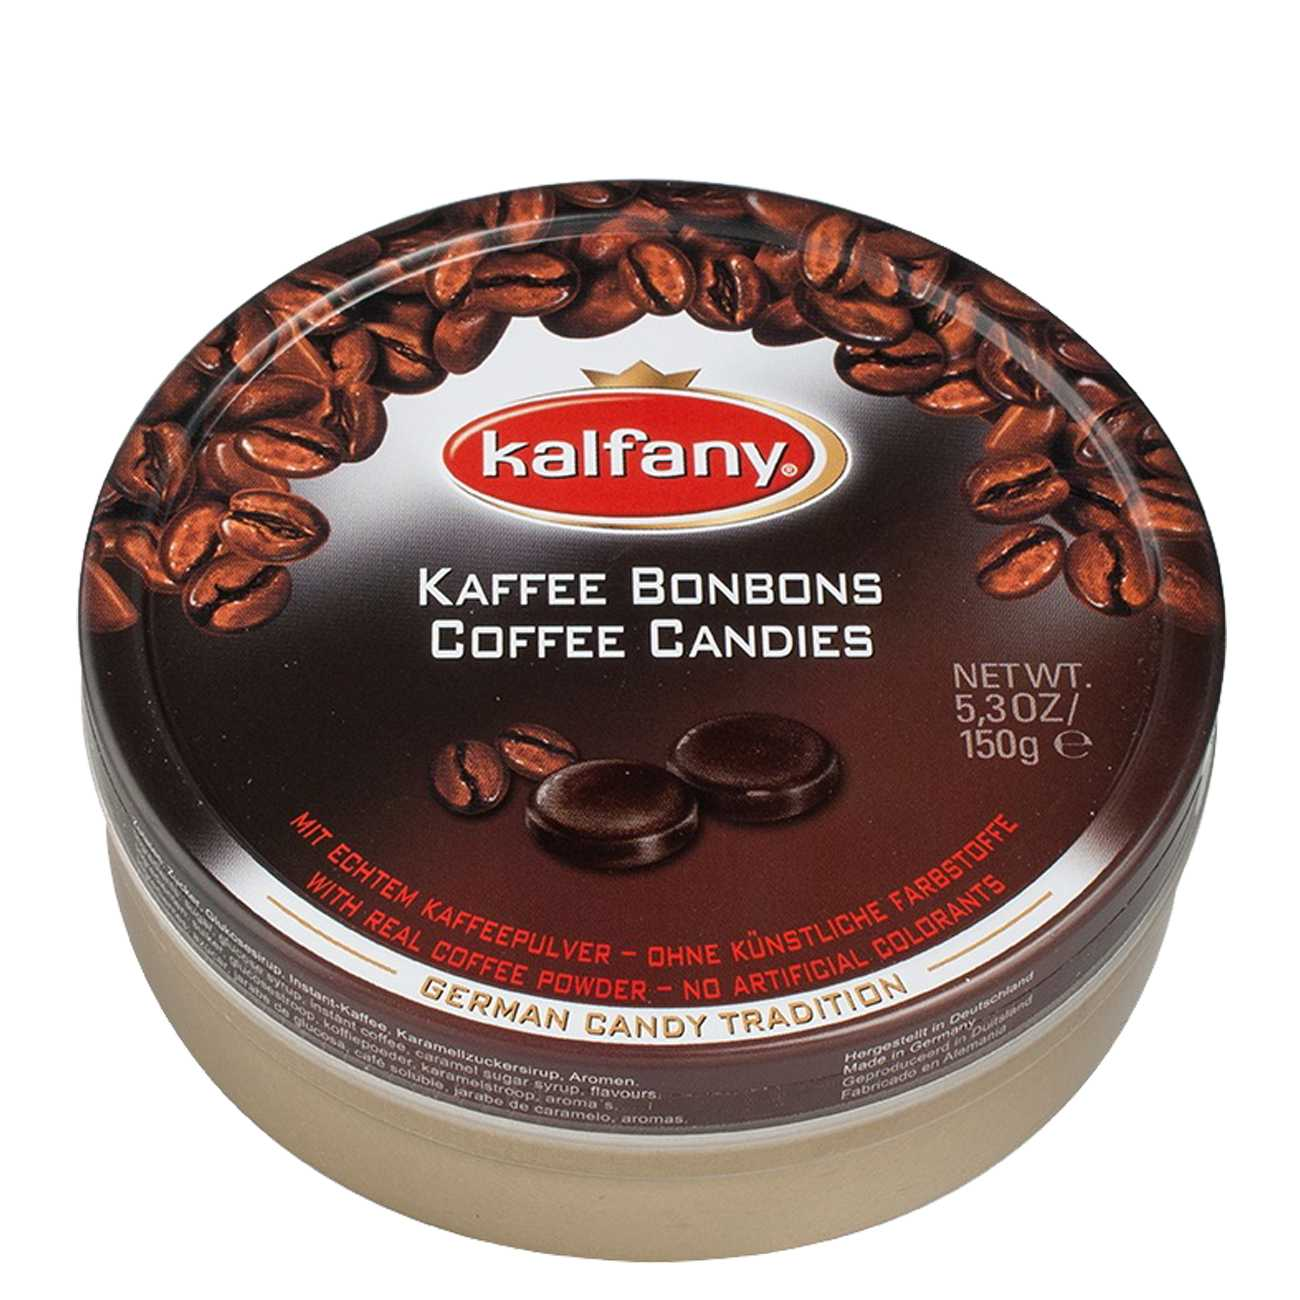 COFFEE CANDIES 150 G